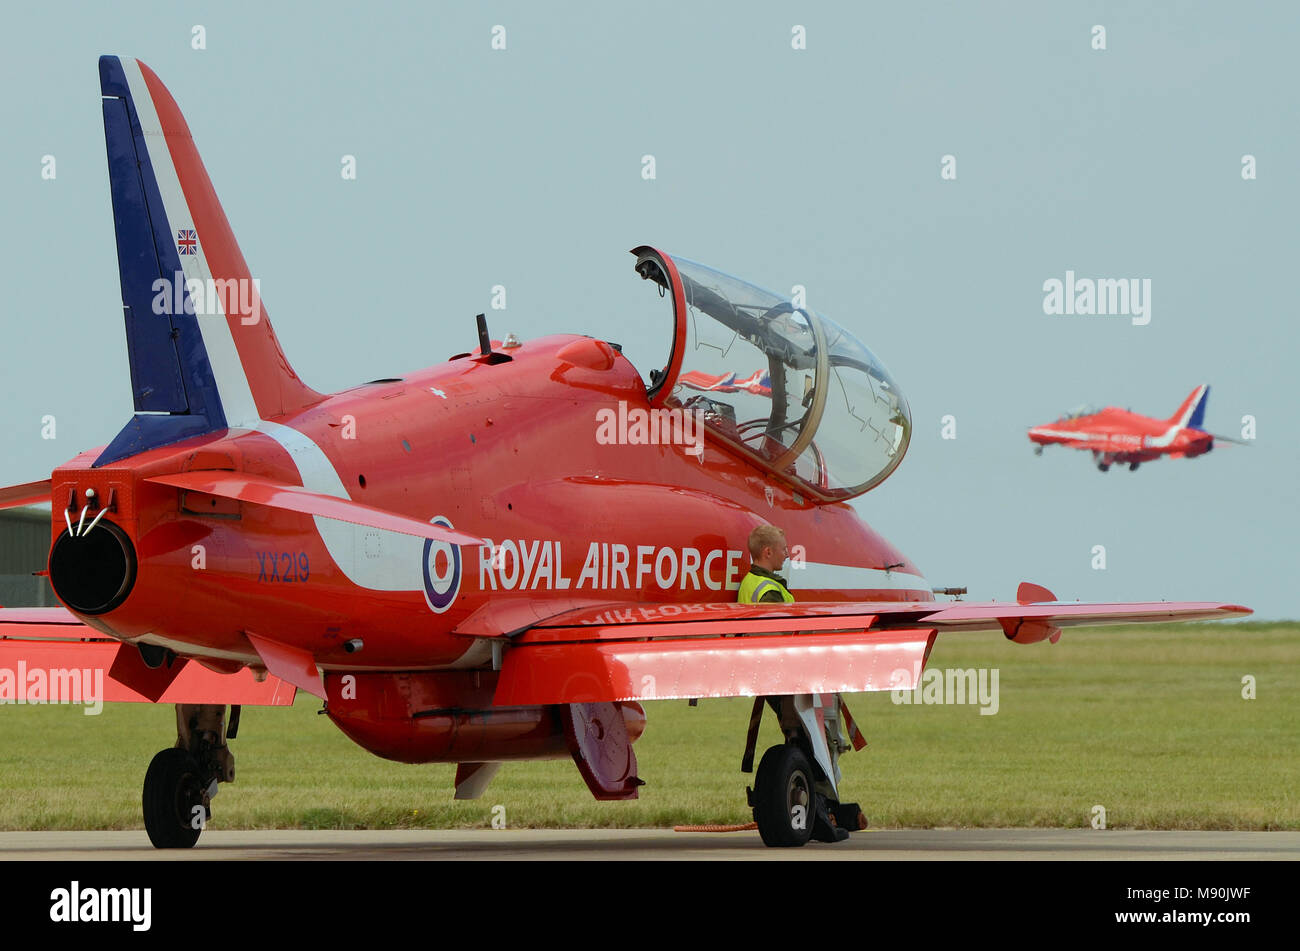 Engineer mechanic watching jets of the Royal Air Force Red Arrows take off at RAF Scampton with spare jet. Space for copy - Stock Image